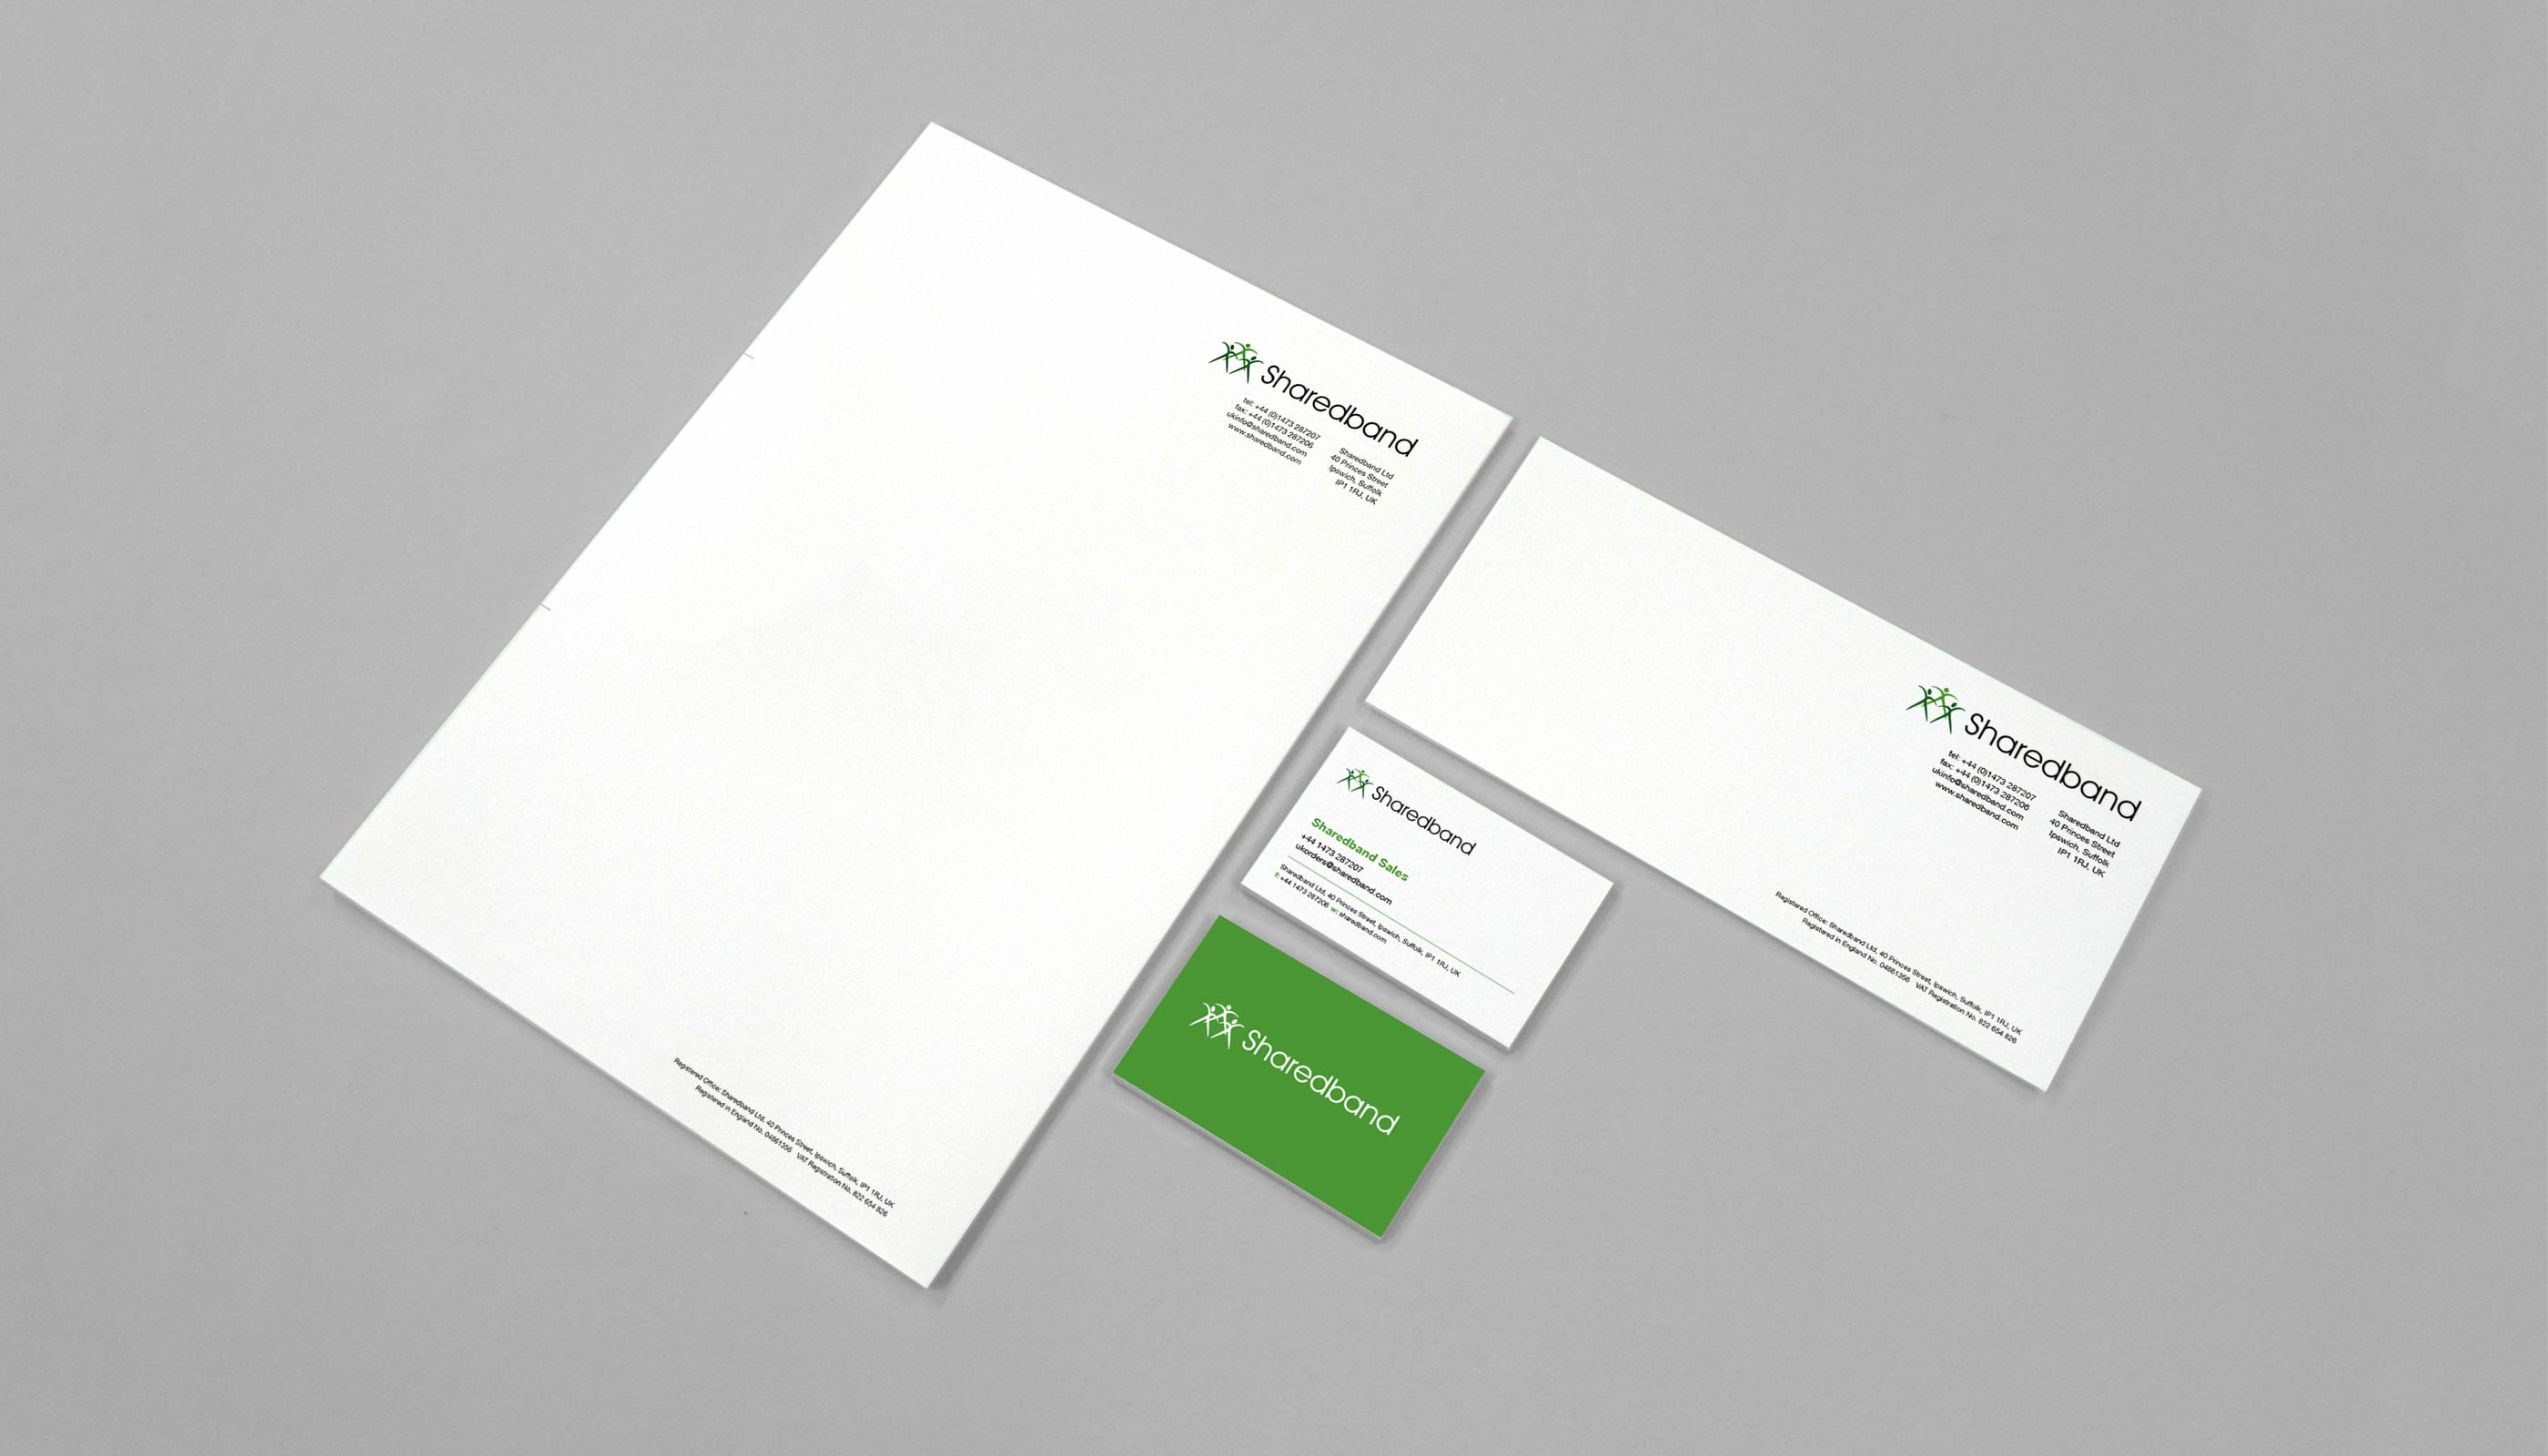 Stationery design and print for Sharedband in Ipswich, Suffolk.